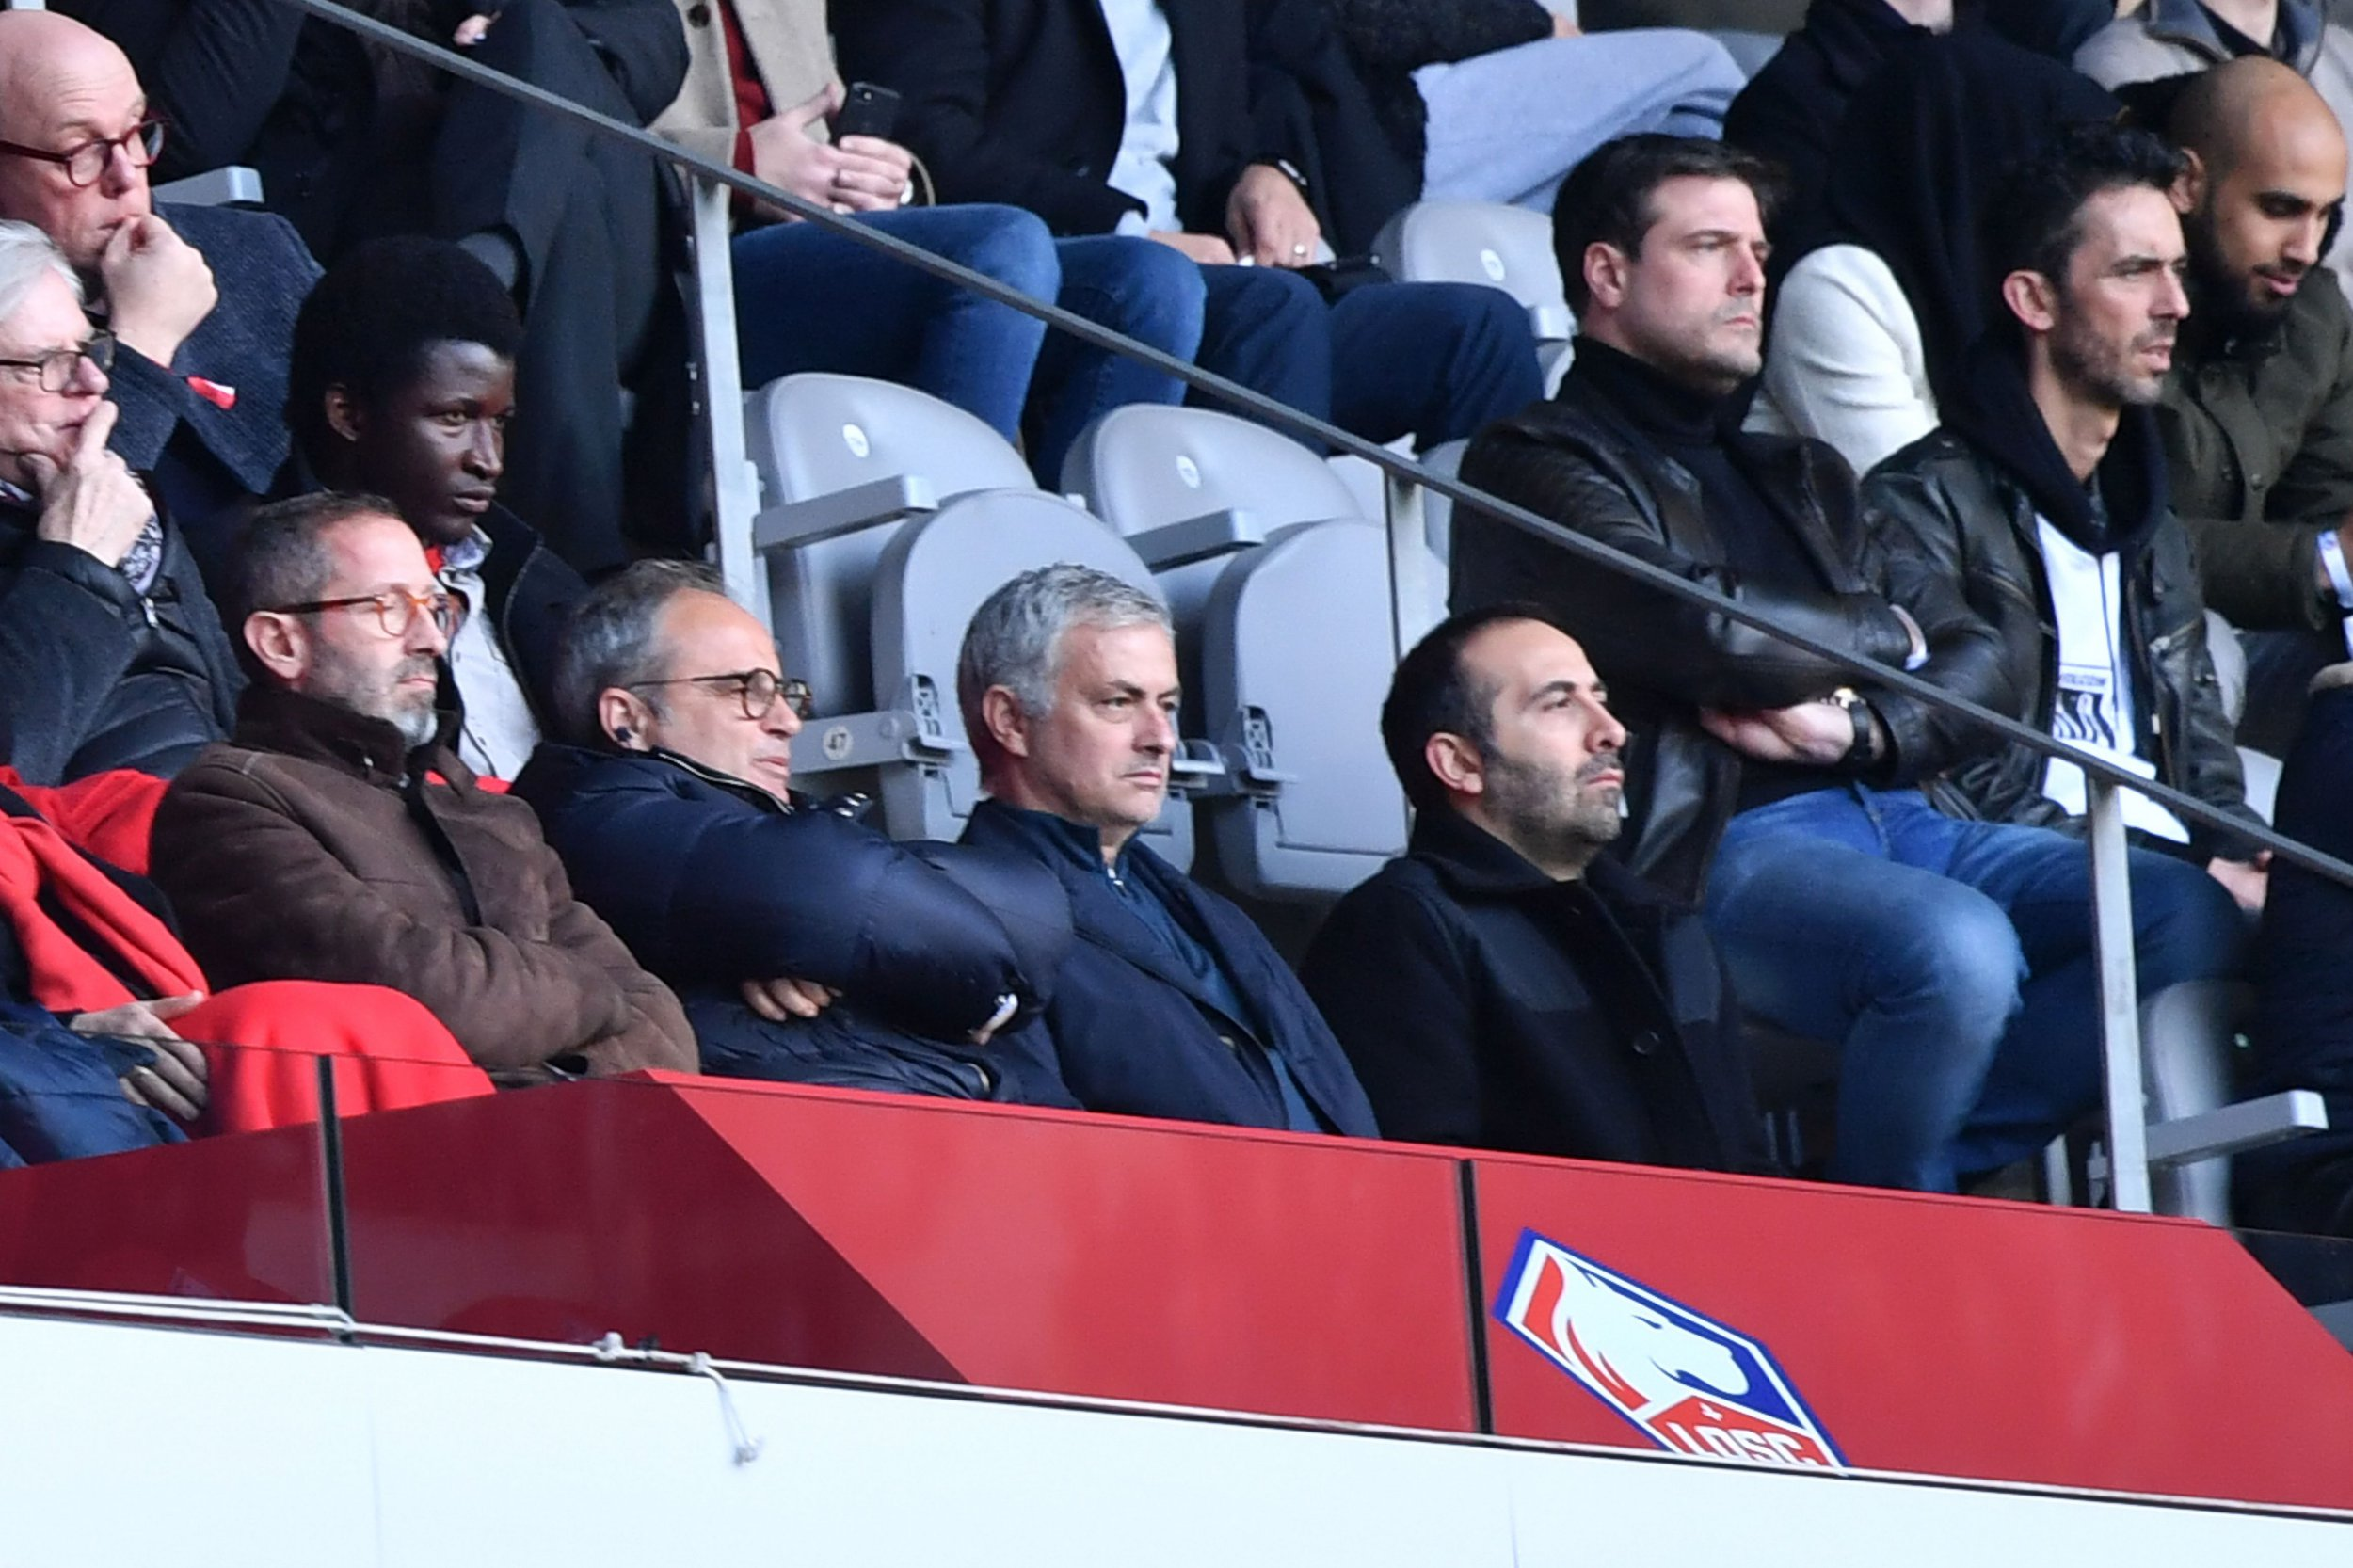 Former Manchester United manager Jose Mourinho (front, 2R) watches the French L1 football match Lille vs Montpellier on Februrary 17, 2019 at the Pierre Mauroy Stadium in Villeneuve-d'Ascq, northern France. (Photo by PHILIPPE HUGUEN / AFP)PHILIPPE HUGUEN/AFP/Getty Images